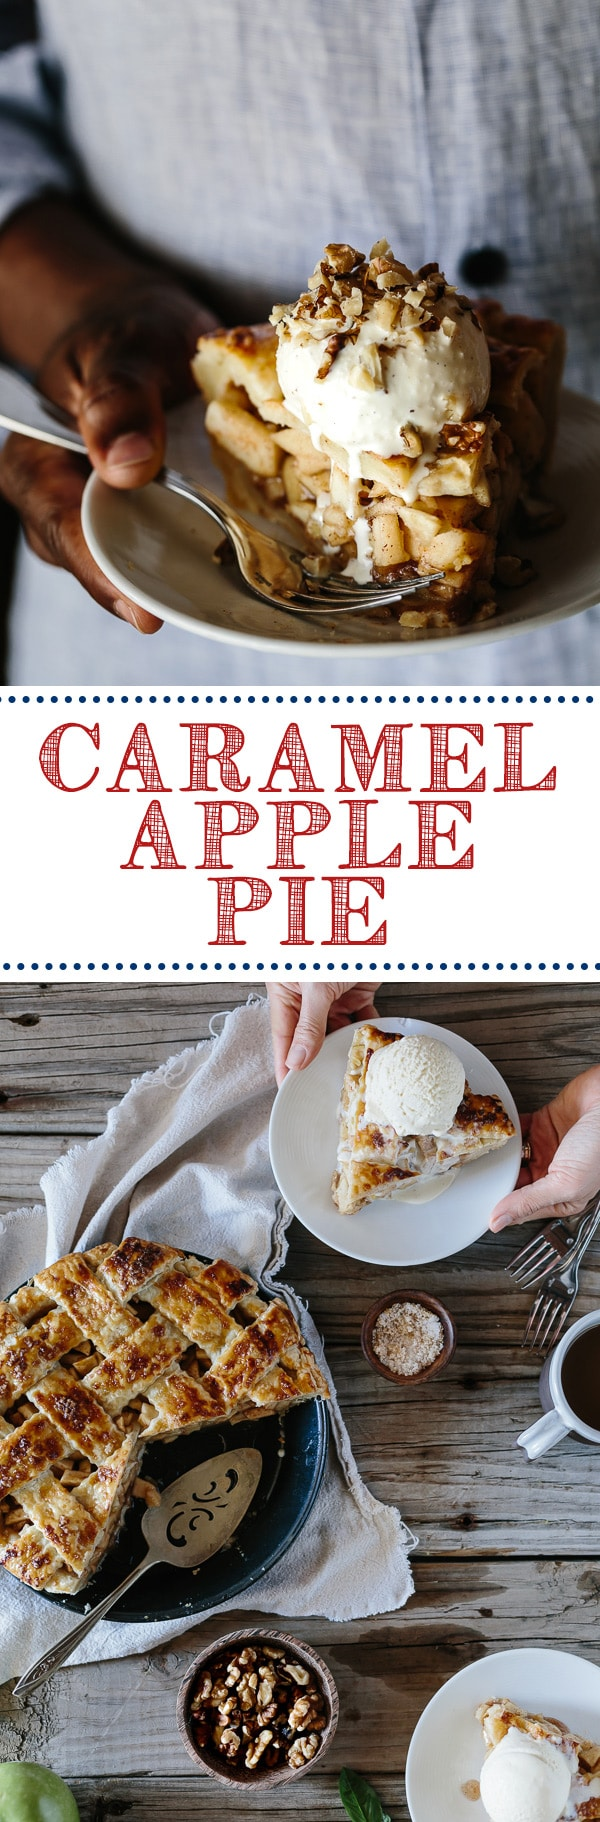 Caramel Apple Pie: A delicious apple pie recipe from Seven Spoons ...